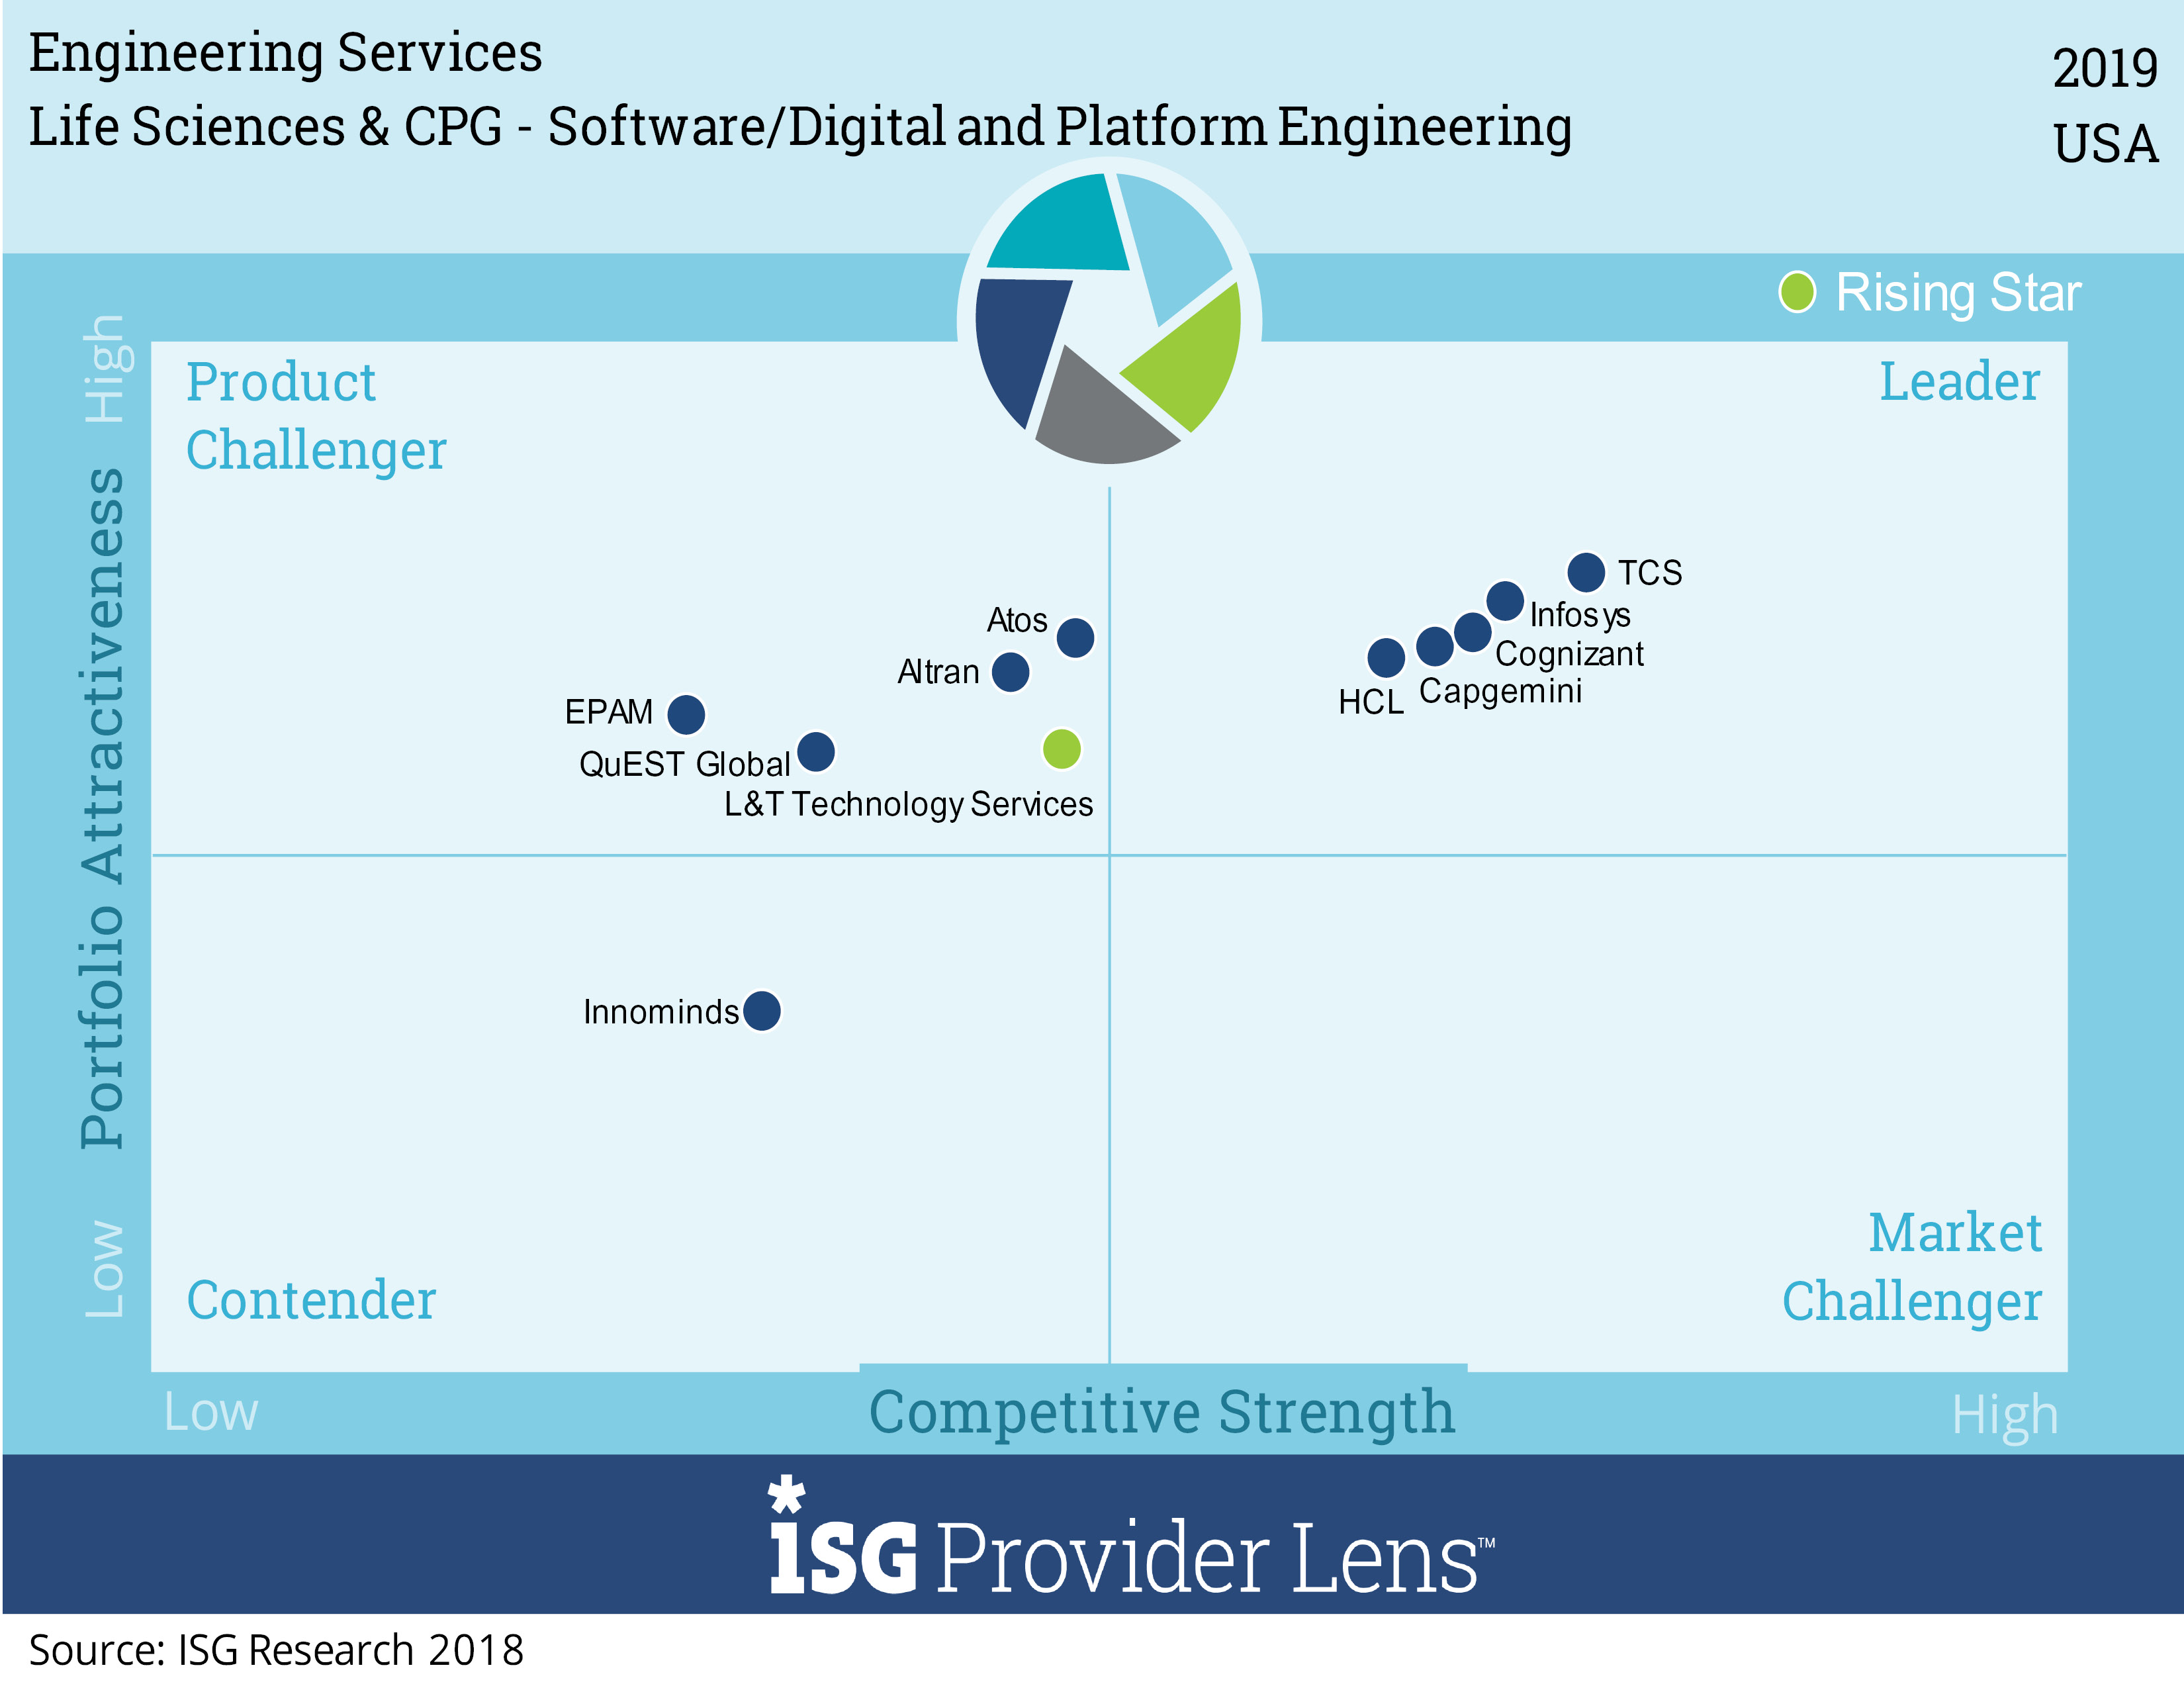 Software, digital and platform engineering services consist of software product development and all related application software development, independent of specific hardware. It also includes IoT software applications for connectivity, mobility, predictive maintenance, OT data analytics (OT data defined as data being generated from the plant floor and production processes associated with production machines, sensors, control systems, etc.), digital supply chain and related areas, and engineering platform-related software work, such as IoT, PLM, MES and other industrial systems. ERP platforms are out of scope.